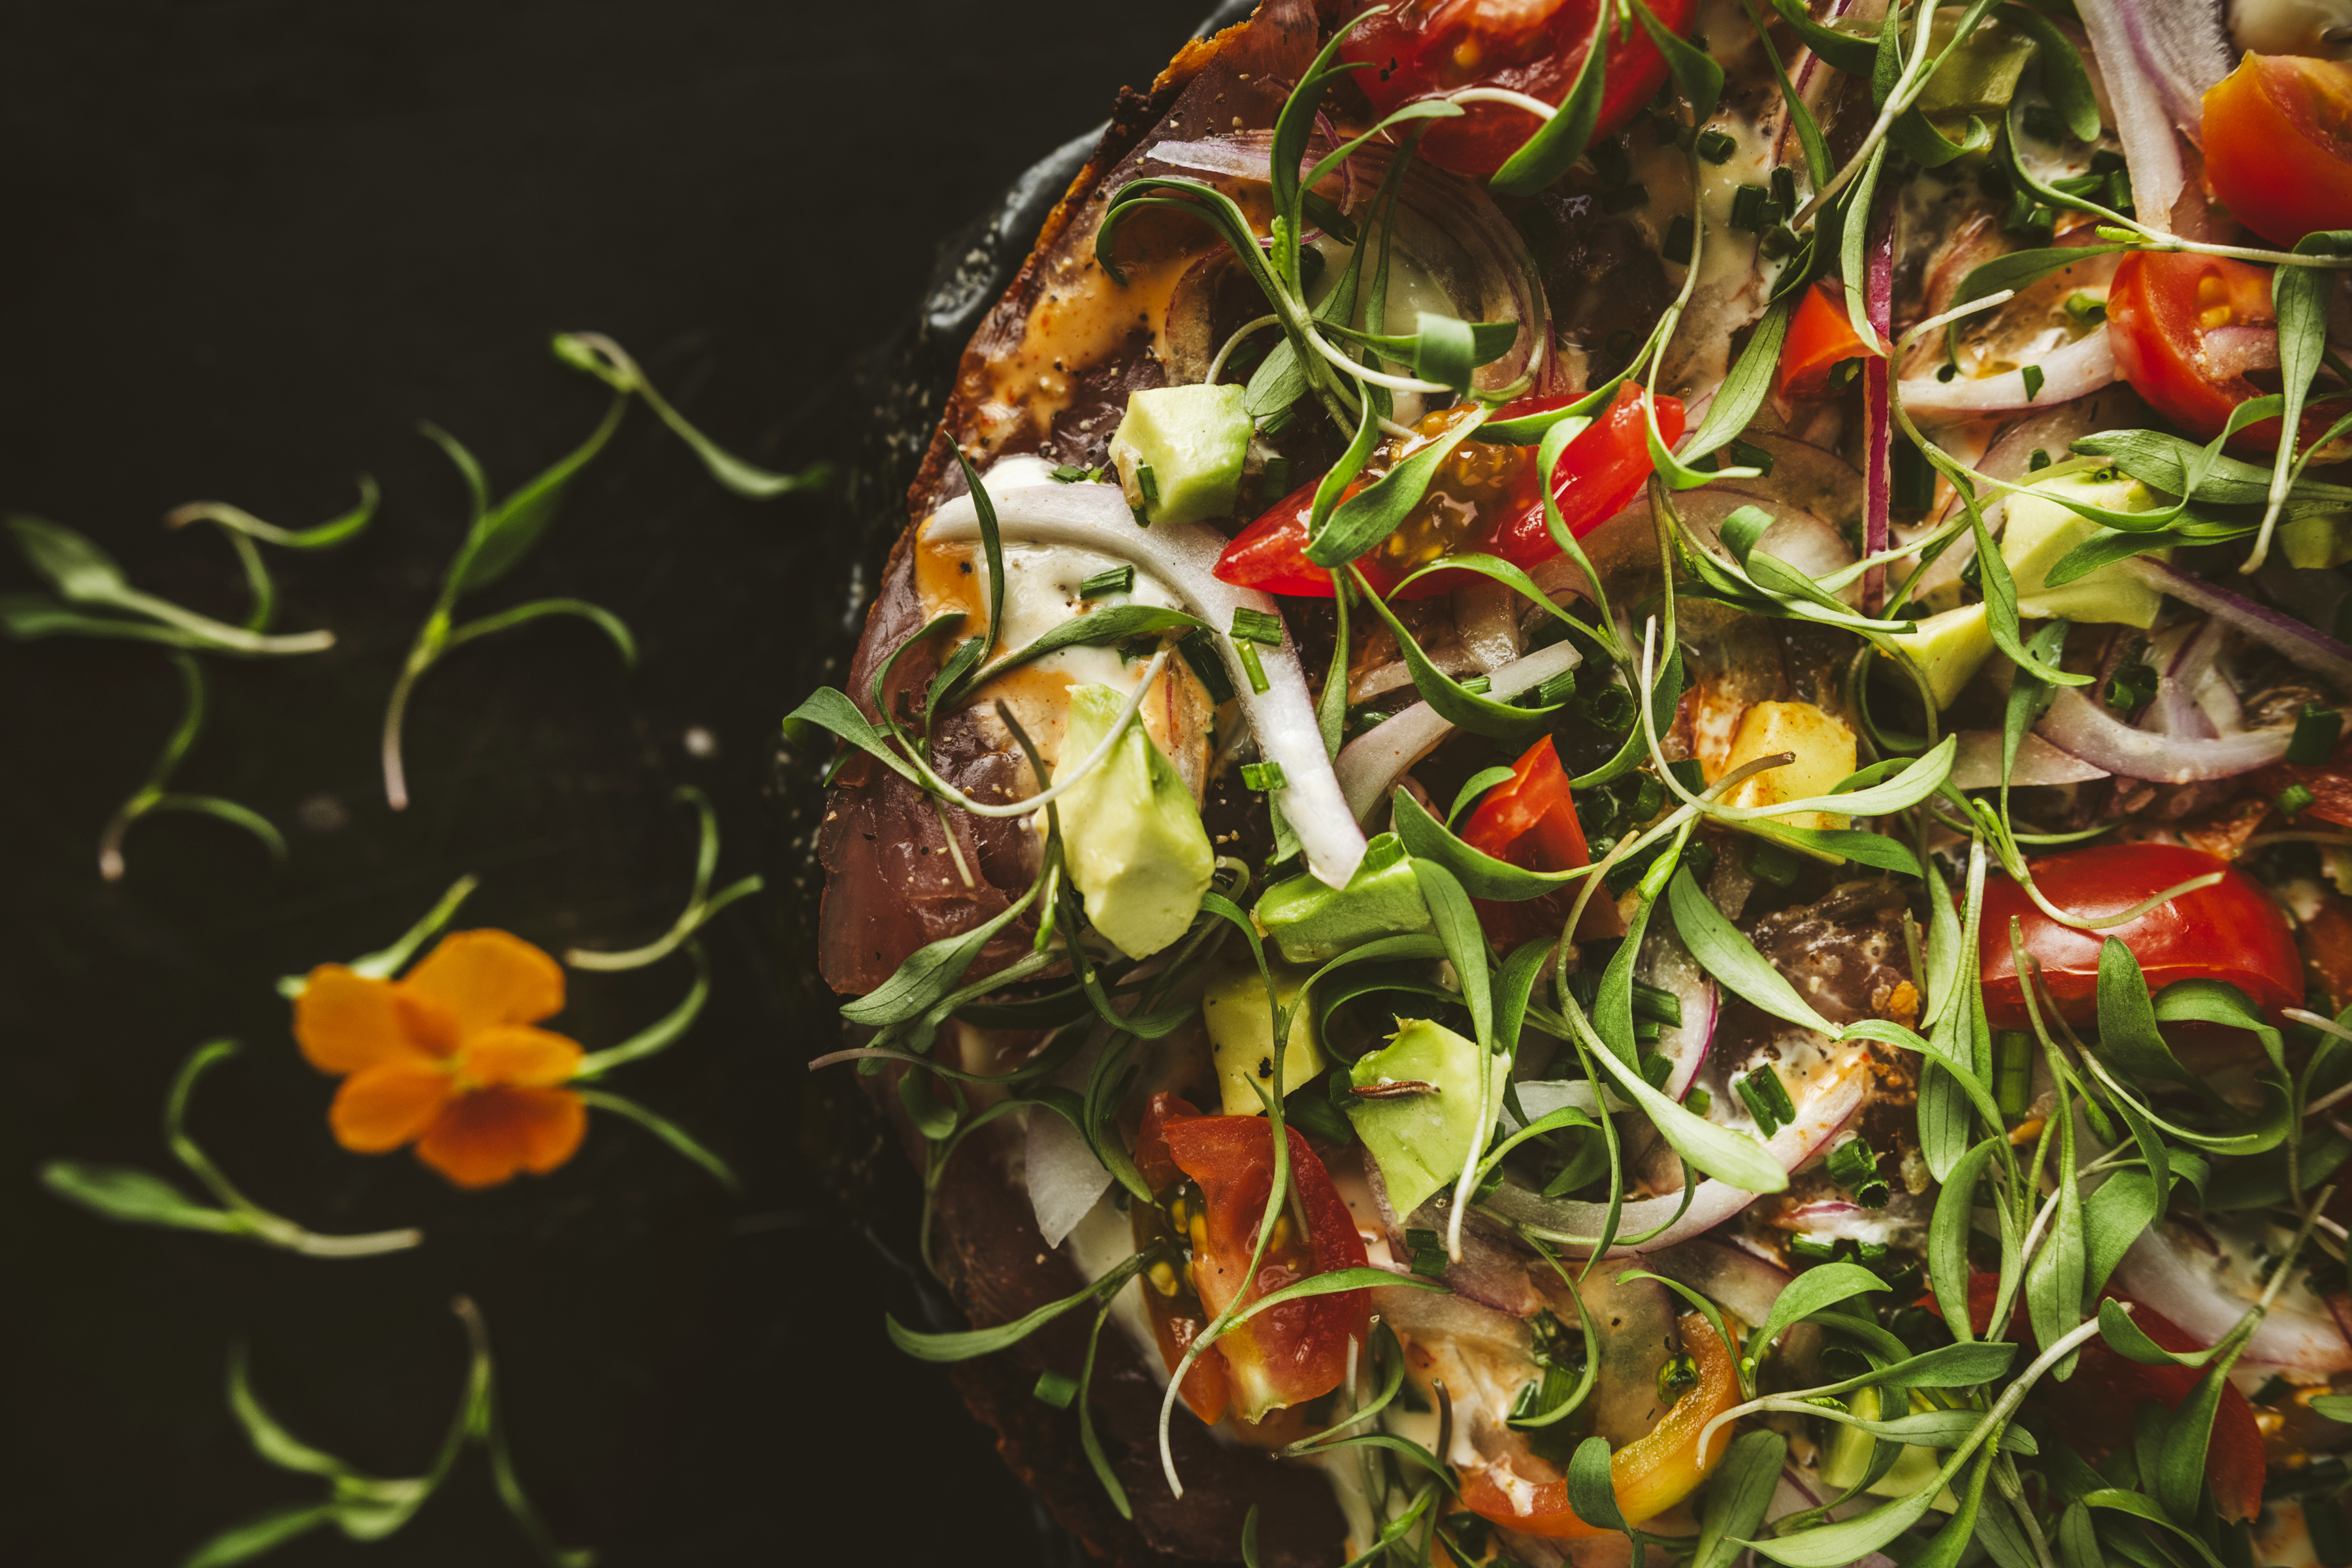 Pizza on a black background with tomatoes, micro greens, and peppers